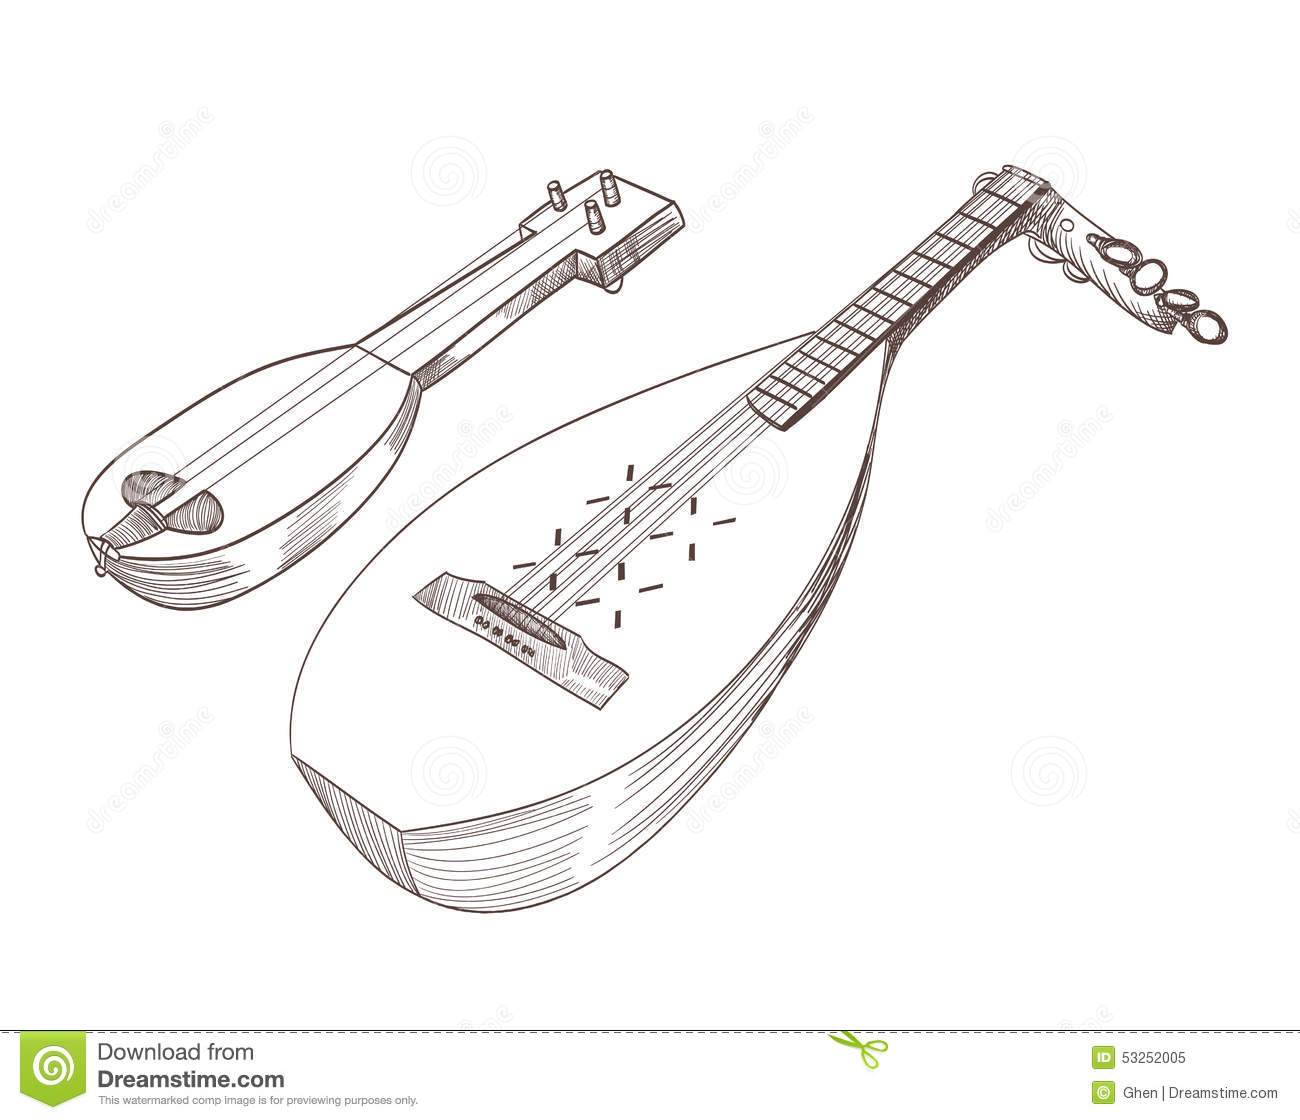 It is an image of Sly Musical Instruments Drawing